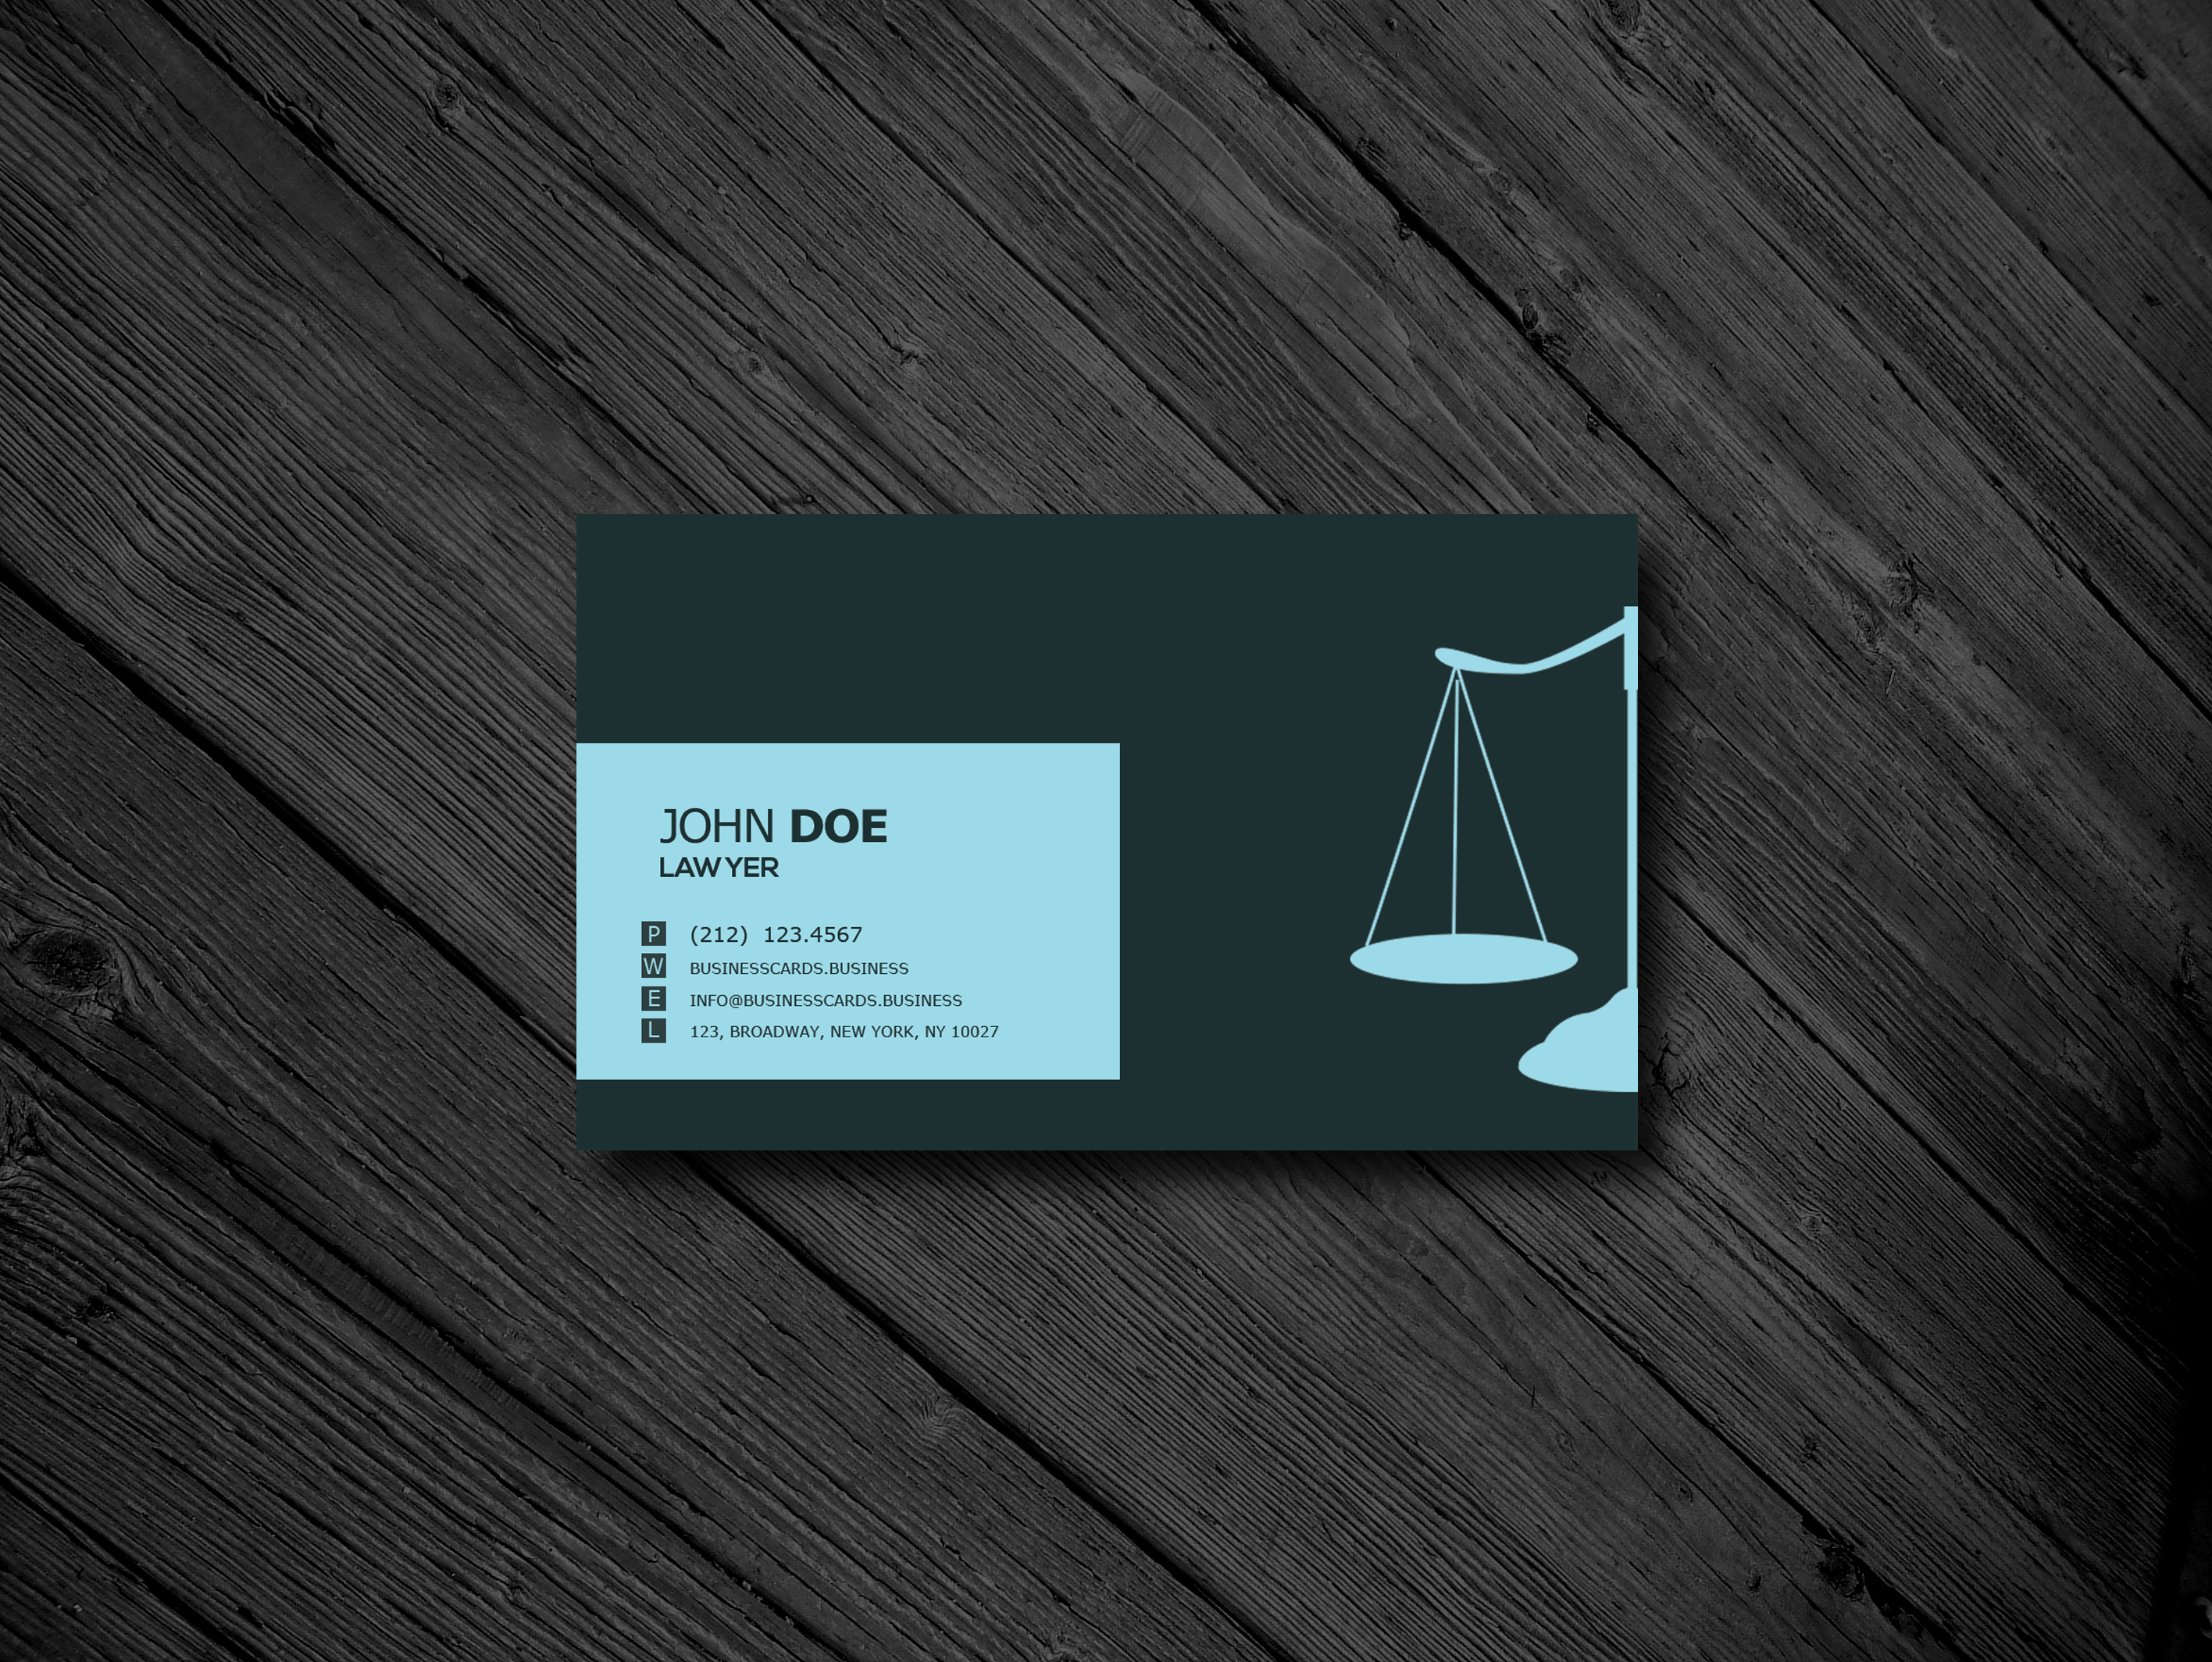 Free business card templates business cards templates free lawyer business card psd template cheaphphosting